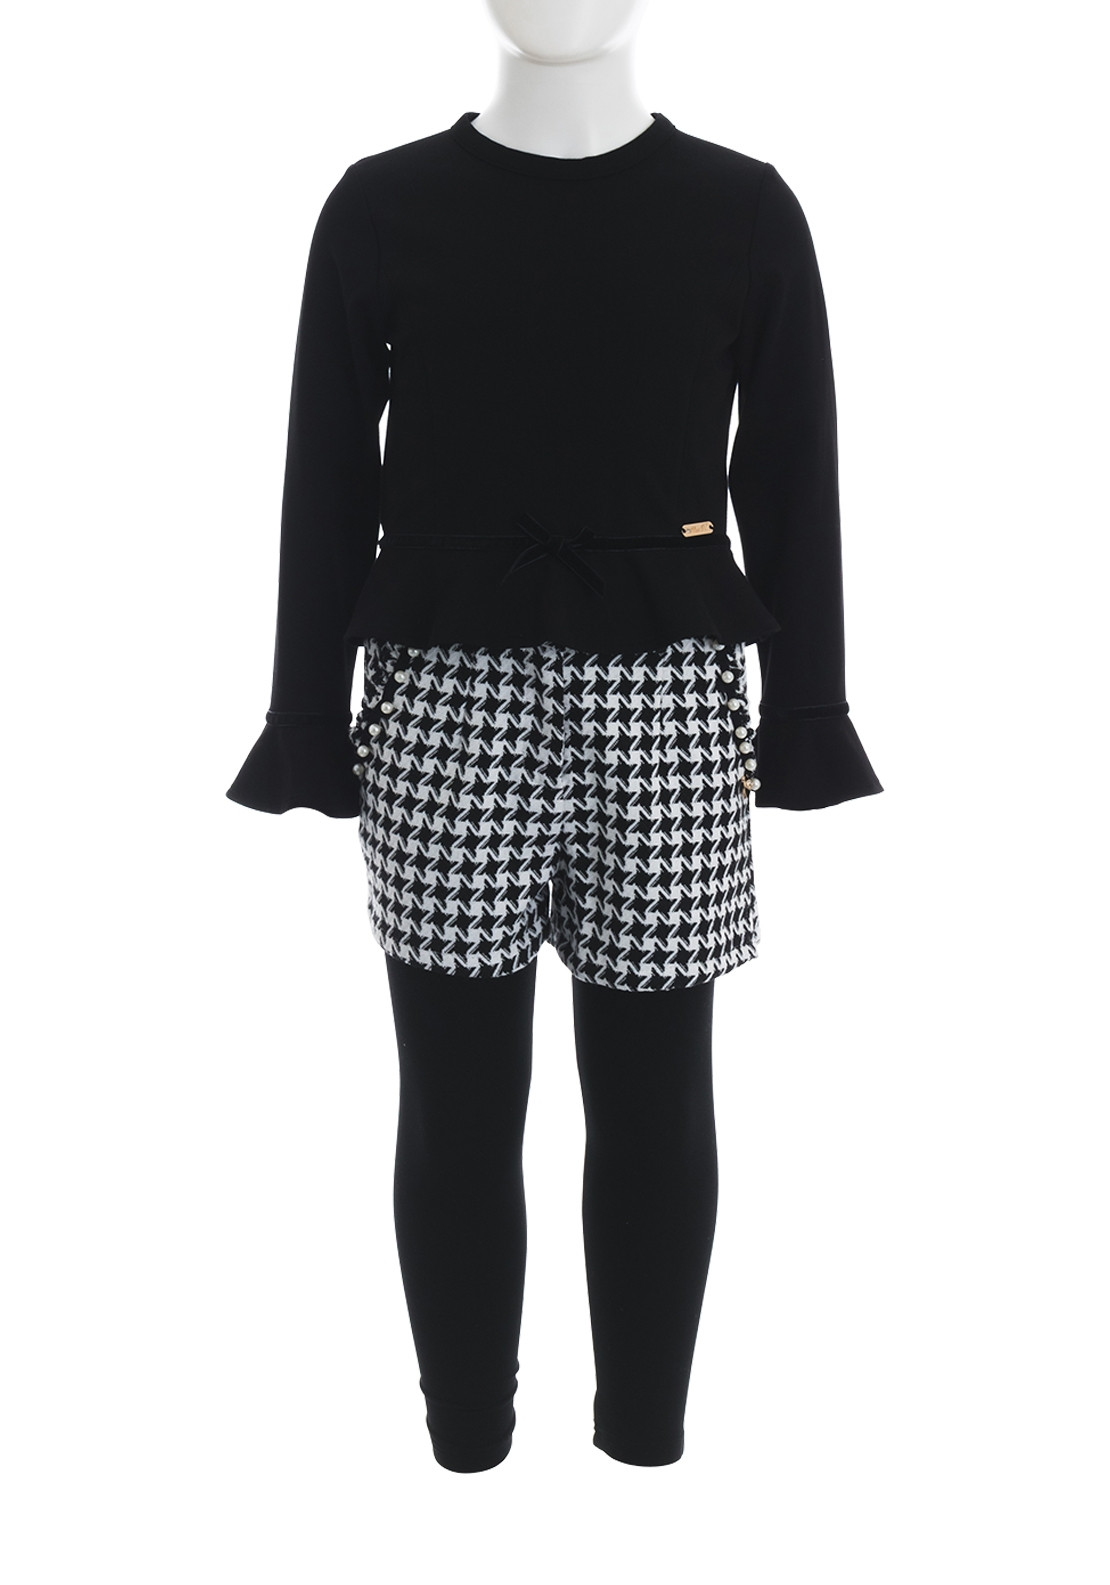 Alice Pi Top and Houndtooth Shorts and Leggings, Black